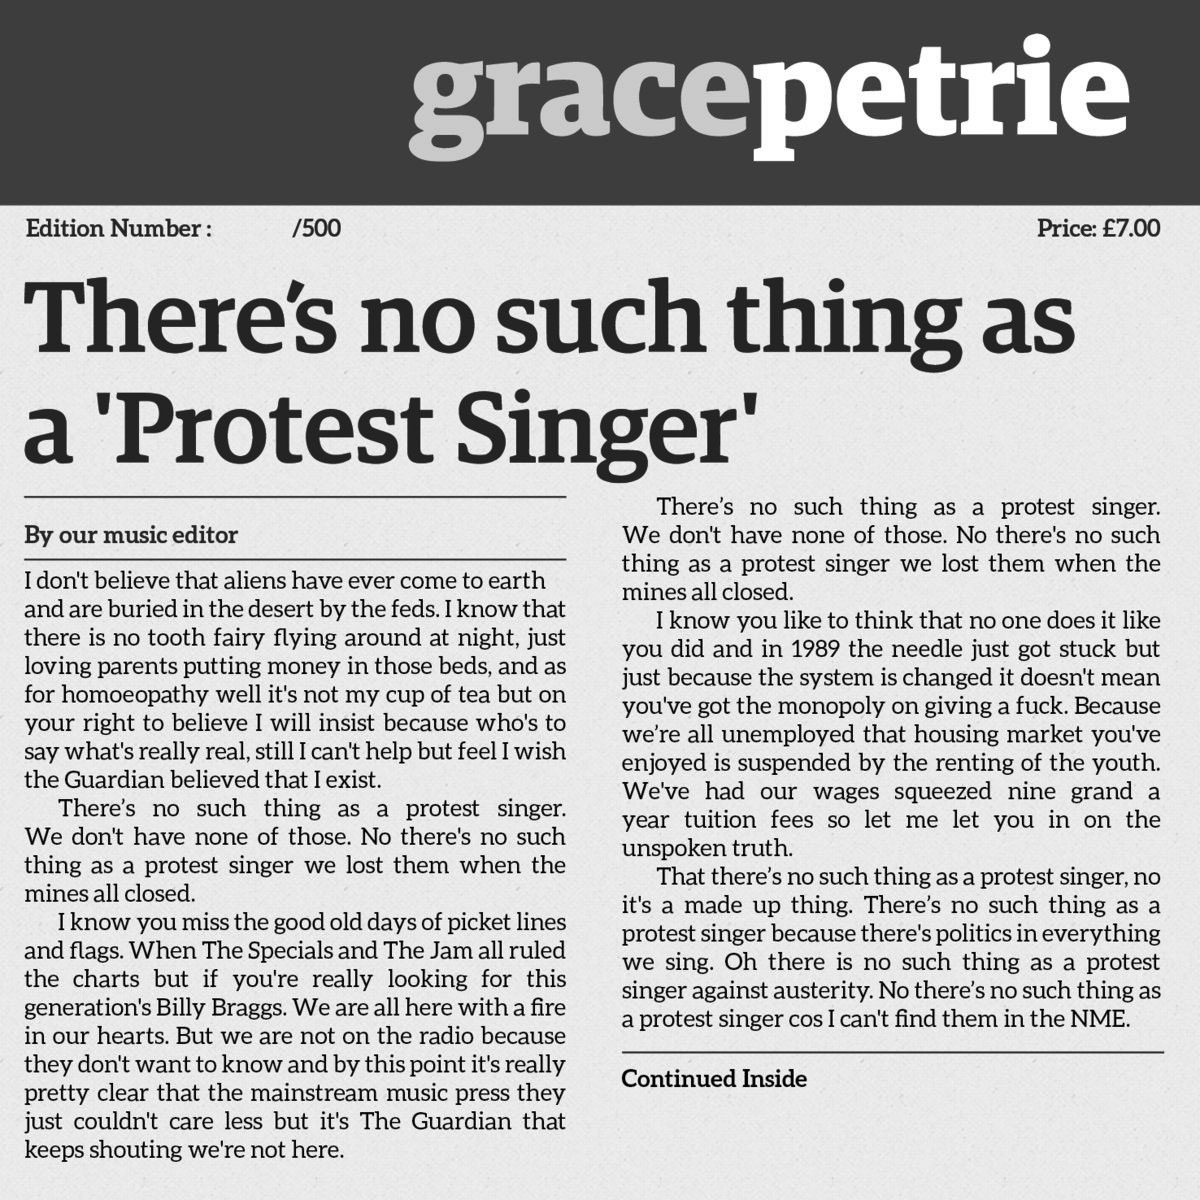 """[Title] """"There's no such thing as a 'Protest Singer.' [Body] by our music editor. """"I don't believe that aliens have ever come to earth and are buried in the desert by the feds. I know that there is no tooth fairy flying around at night, just loving parents putting money in those beds, and as for homeopathy well it's not my cup of tea but on your right to believe I will insist because who's to say what's really real, still I can't help but feel I wish the Guardian believed that I exist. There's no such thing as a protest singer. We don't have none of those. No there's no such thing as a protest singer we lost them when the mines all closed. I know you miss the good old days of picket lines and flags. When The Specials and The Jam all ruled the charts but if you're looking for this generation's Billy Braggs. We are all here with a fire in our hearts. But we are not on the radio because they don't want to know and by this point it's really pretty clear that the mainstream music press they couldn't care less but it's The Guardian that keeps shouting we're not here. There's no such thing as a protest singer. We don't have none of those. No there's no such thing as a protest singer we lost them when the mines all closed. I know you like to think that no one does it like you did and in 1989 the needles just got stuck but just because the system is changed it doesn't mean you've got the monopoly on giving a fuck. Because we're all unemployed that housing market you've enjoyed is suspended by the renting of the youth. We've had our wages squeezed nine grand a year tuition fees so let me let you in on the unspoken truth. That there's no such thing as a protest singer, no it's a made up thing. There's no such thing as a protest singer because there's politics in everything we sing. Oh there is no such thing as a protest singer cos I kind find them in the NME."""